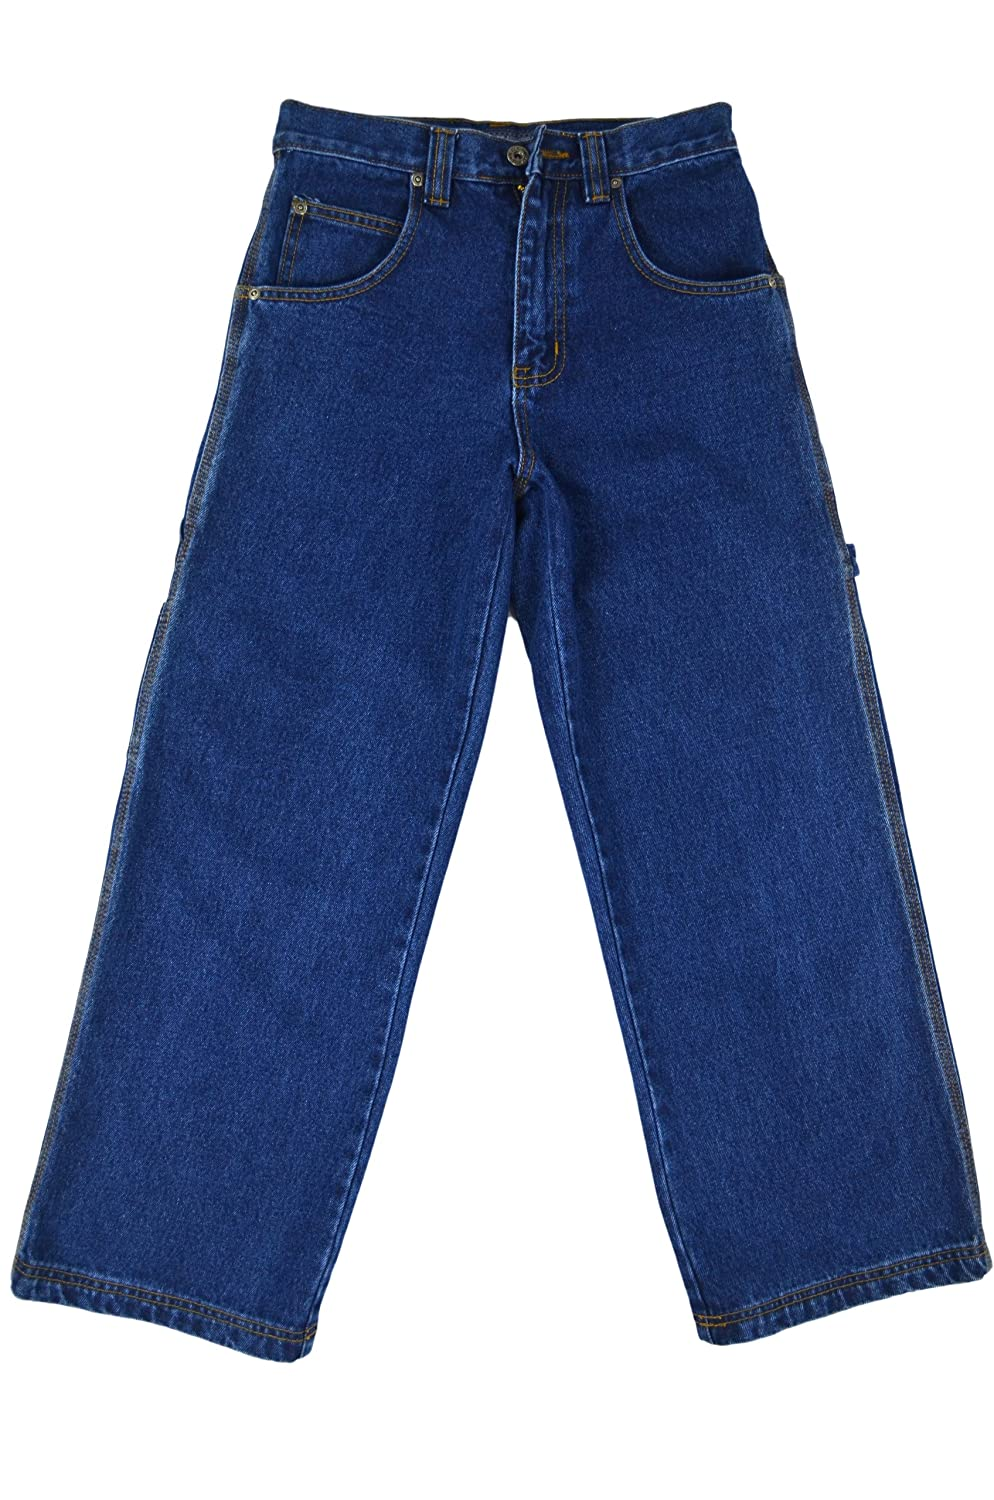 Boy Carpenter Denim Jeans Relaxed fit 8-18